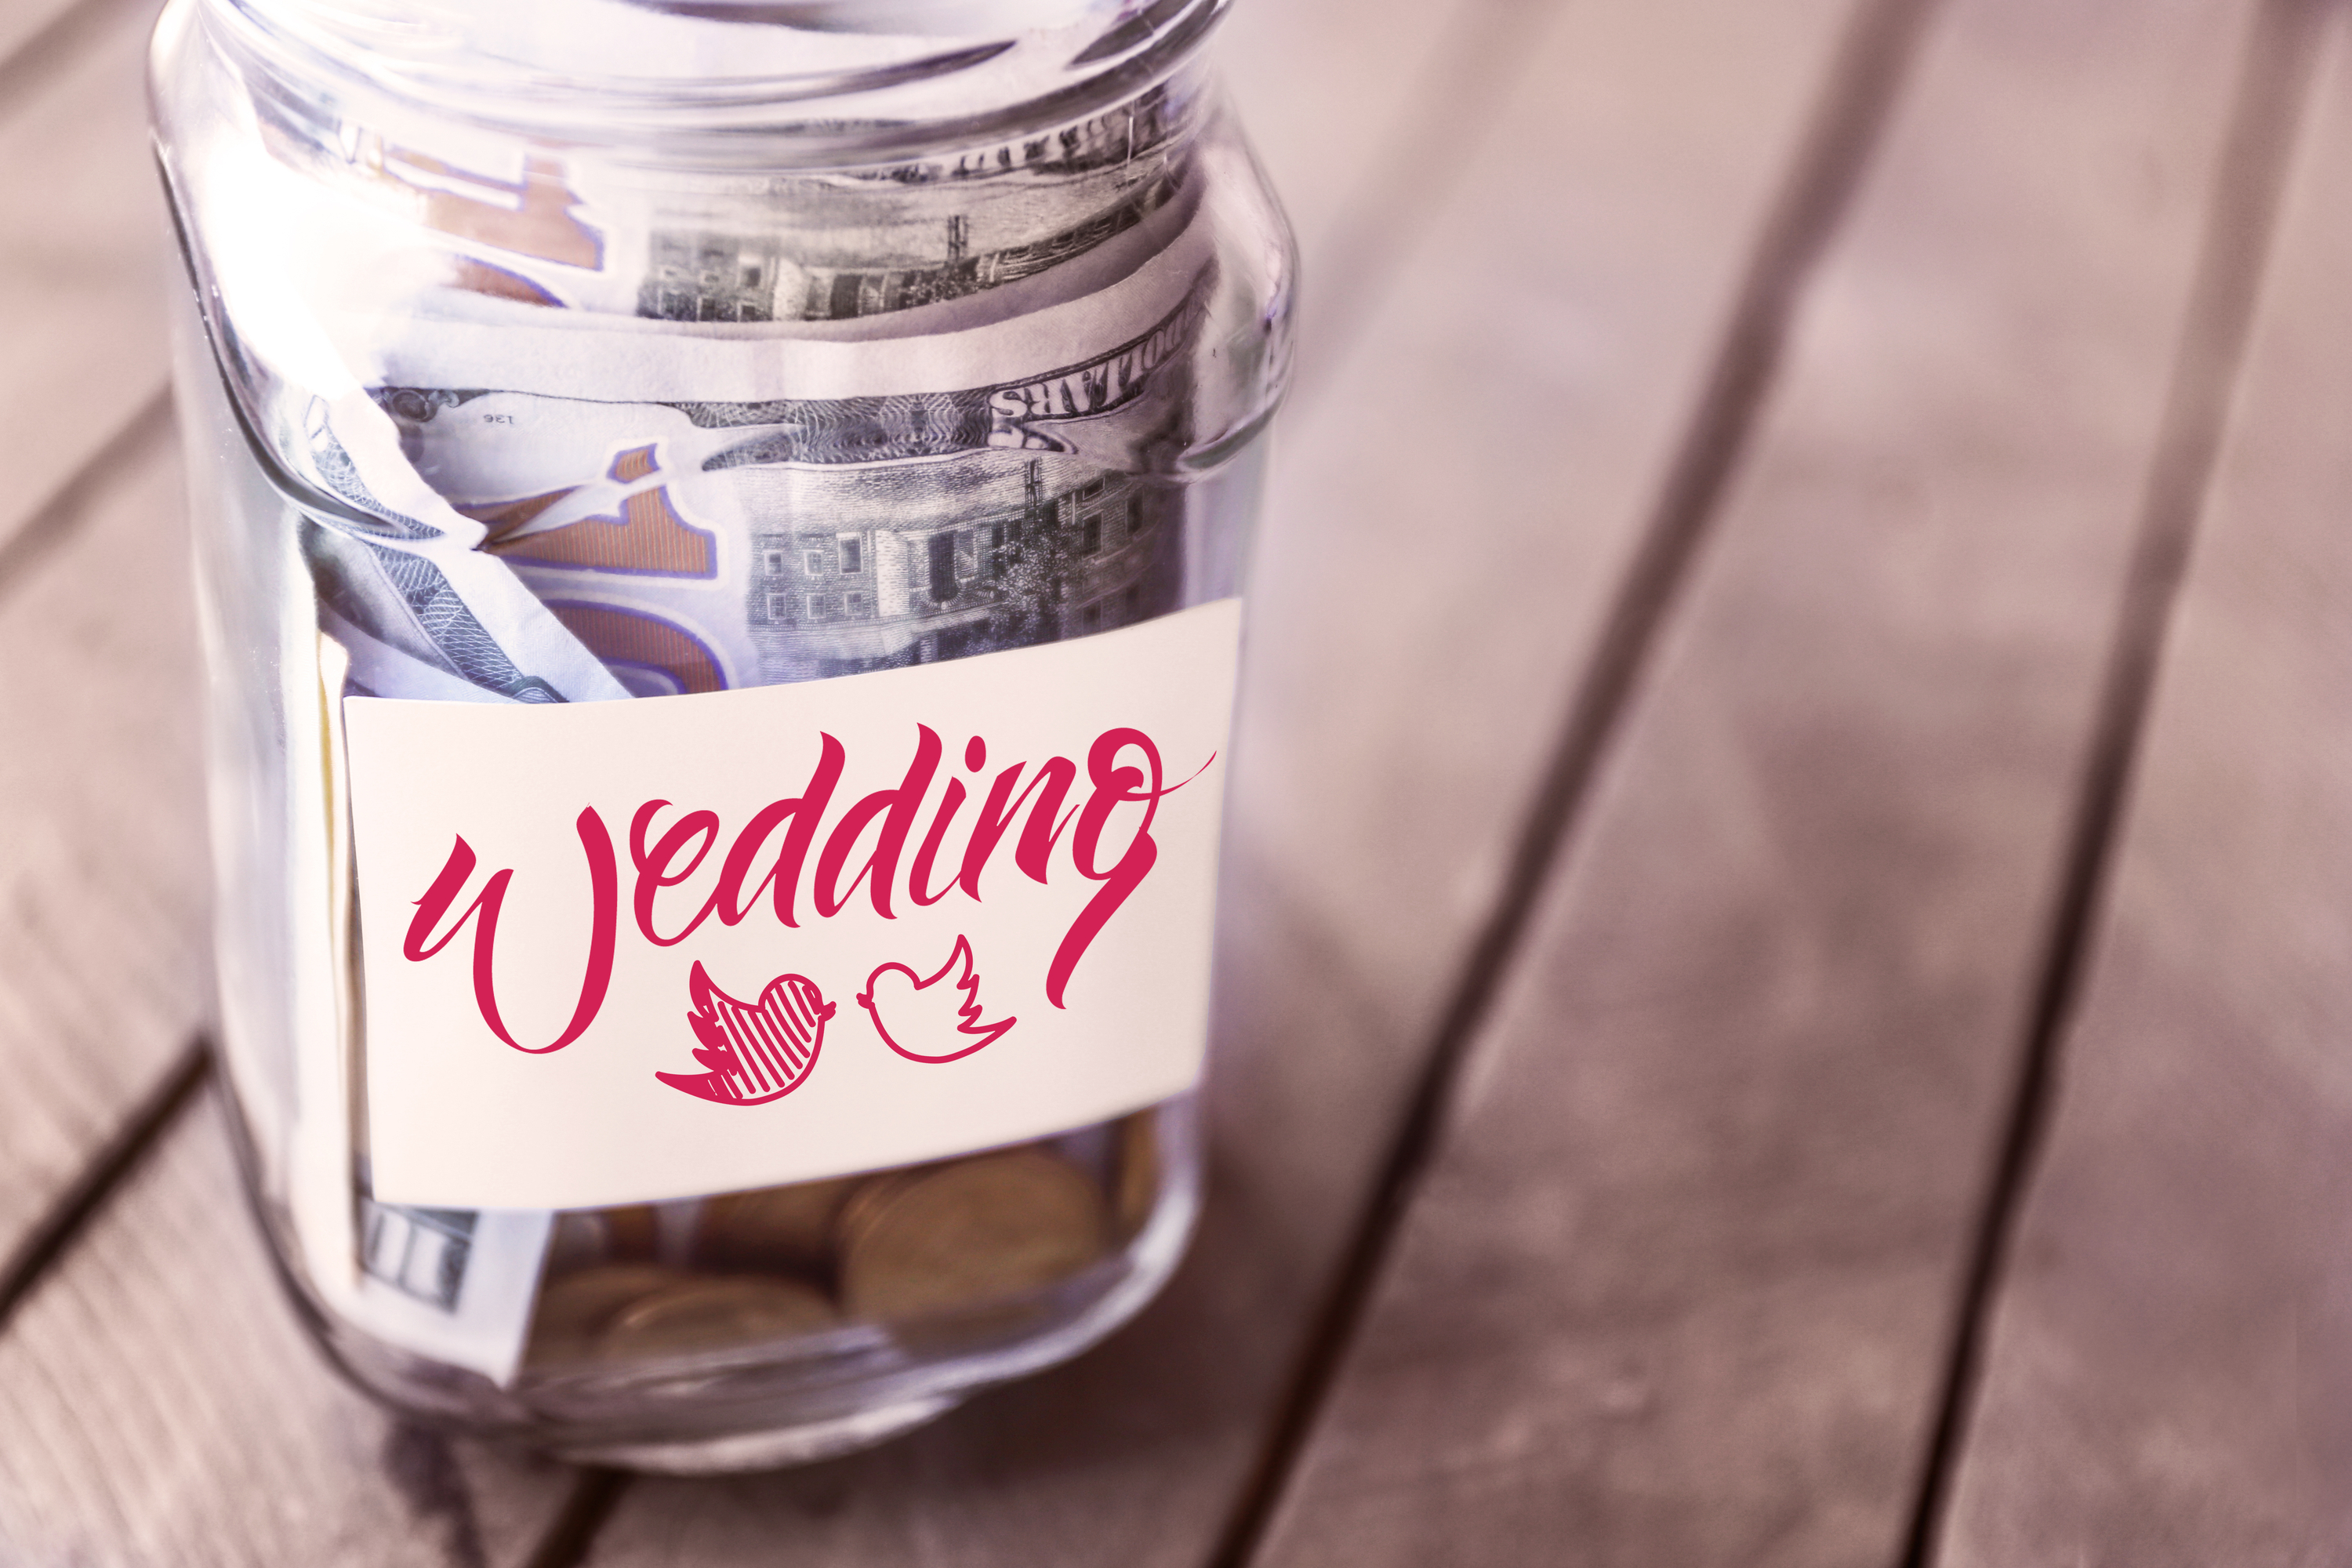 budget | wedding budget | planning a wedding on a budget | budget breaking mistakes | budget breaking wedding mistakes | wedding planning | wedding budget mistakes